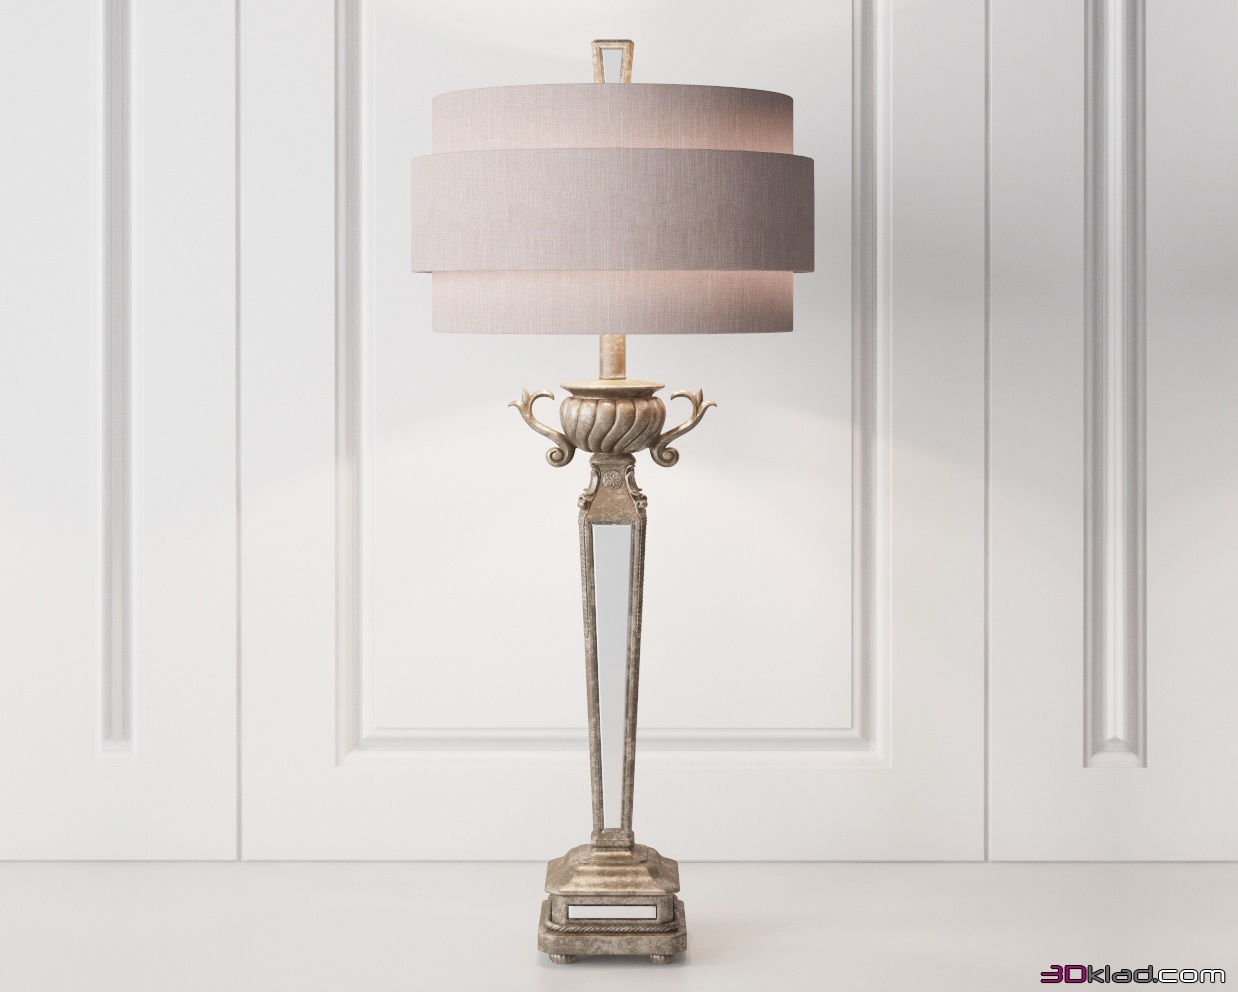 Horchow horchow mirrored table lamp 3d model horchow mirrored table lamp horchow mozeypictures Gallery